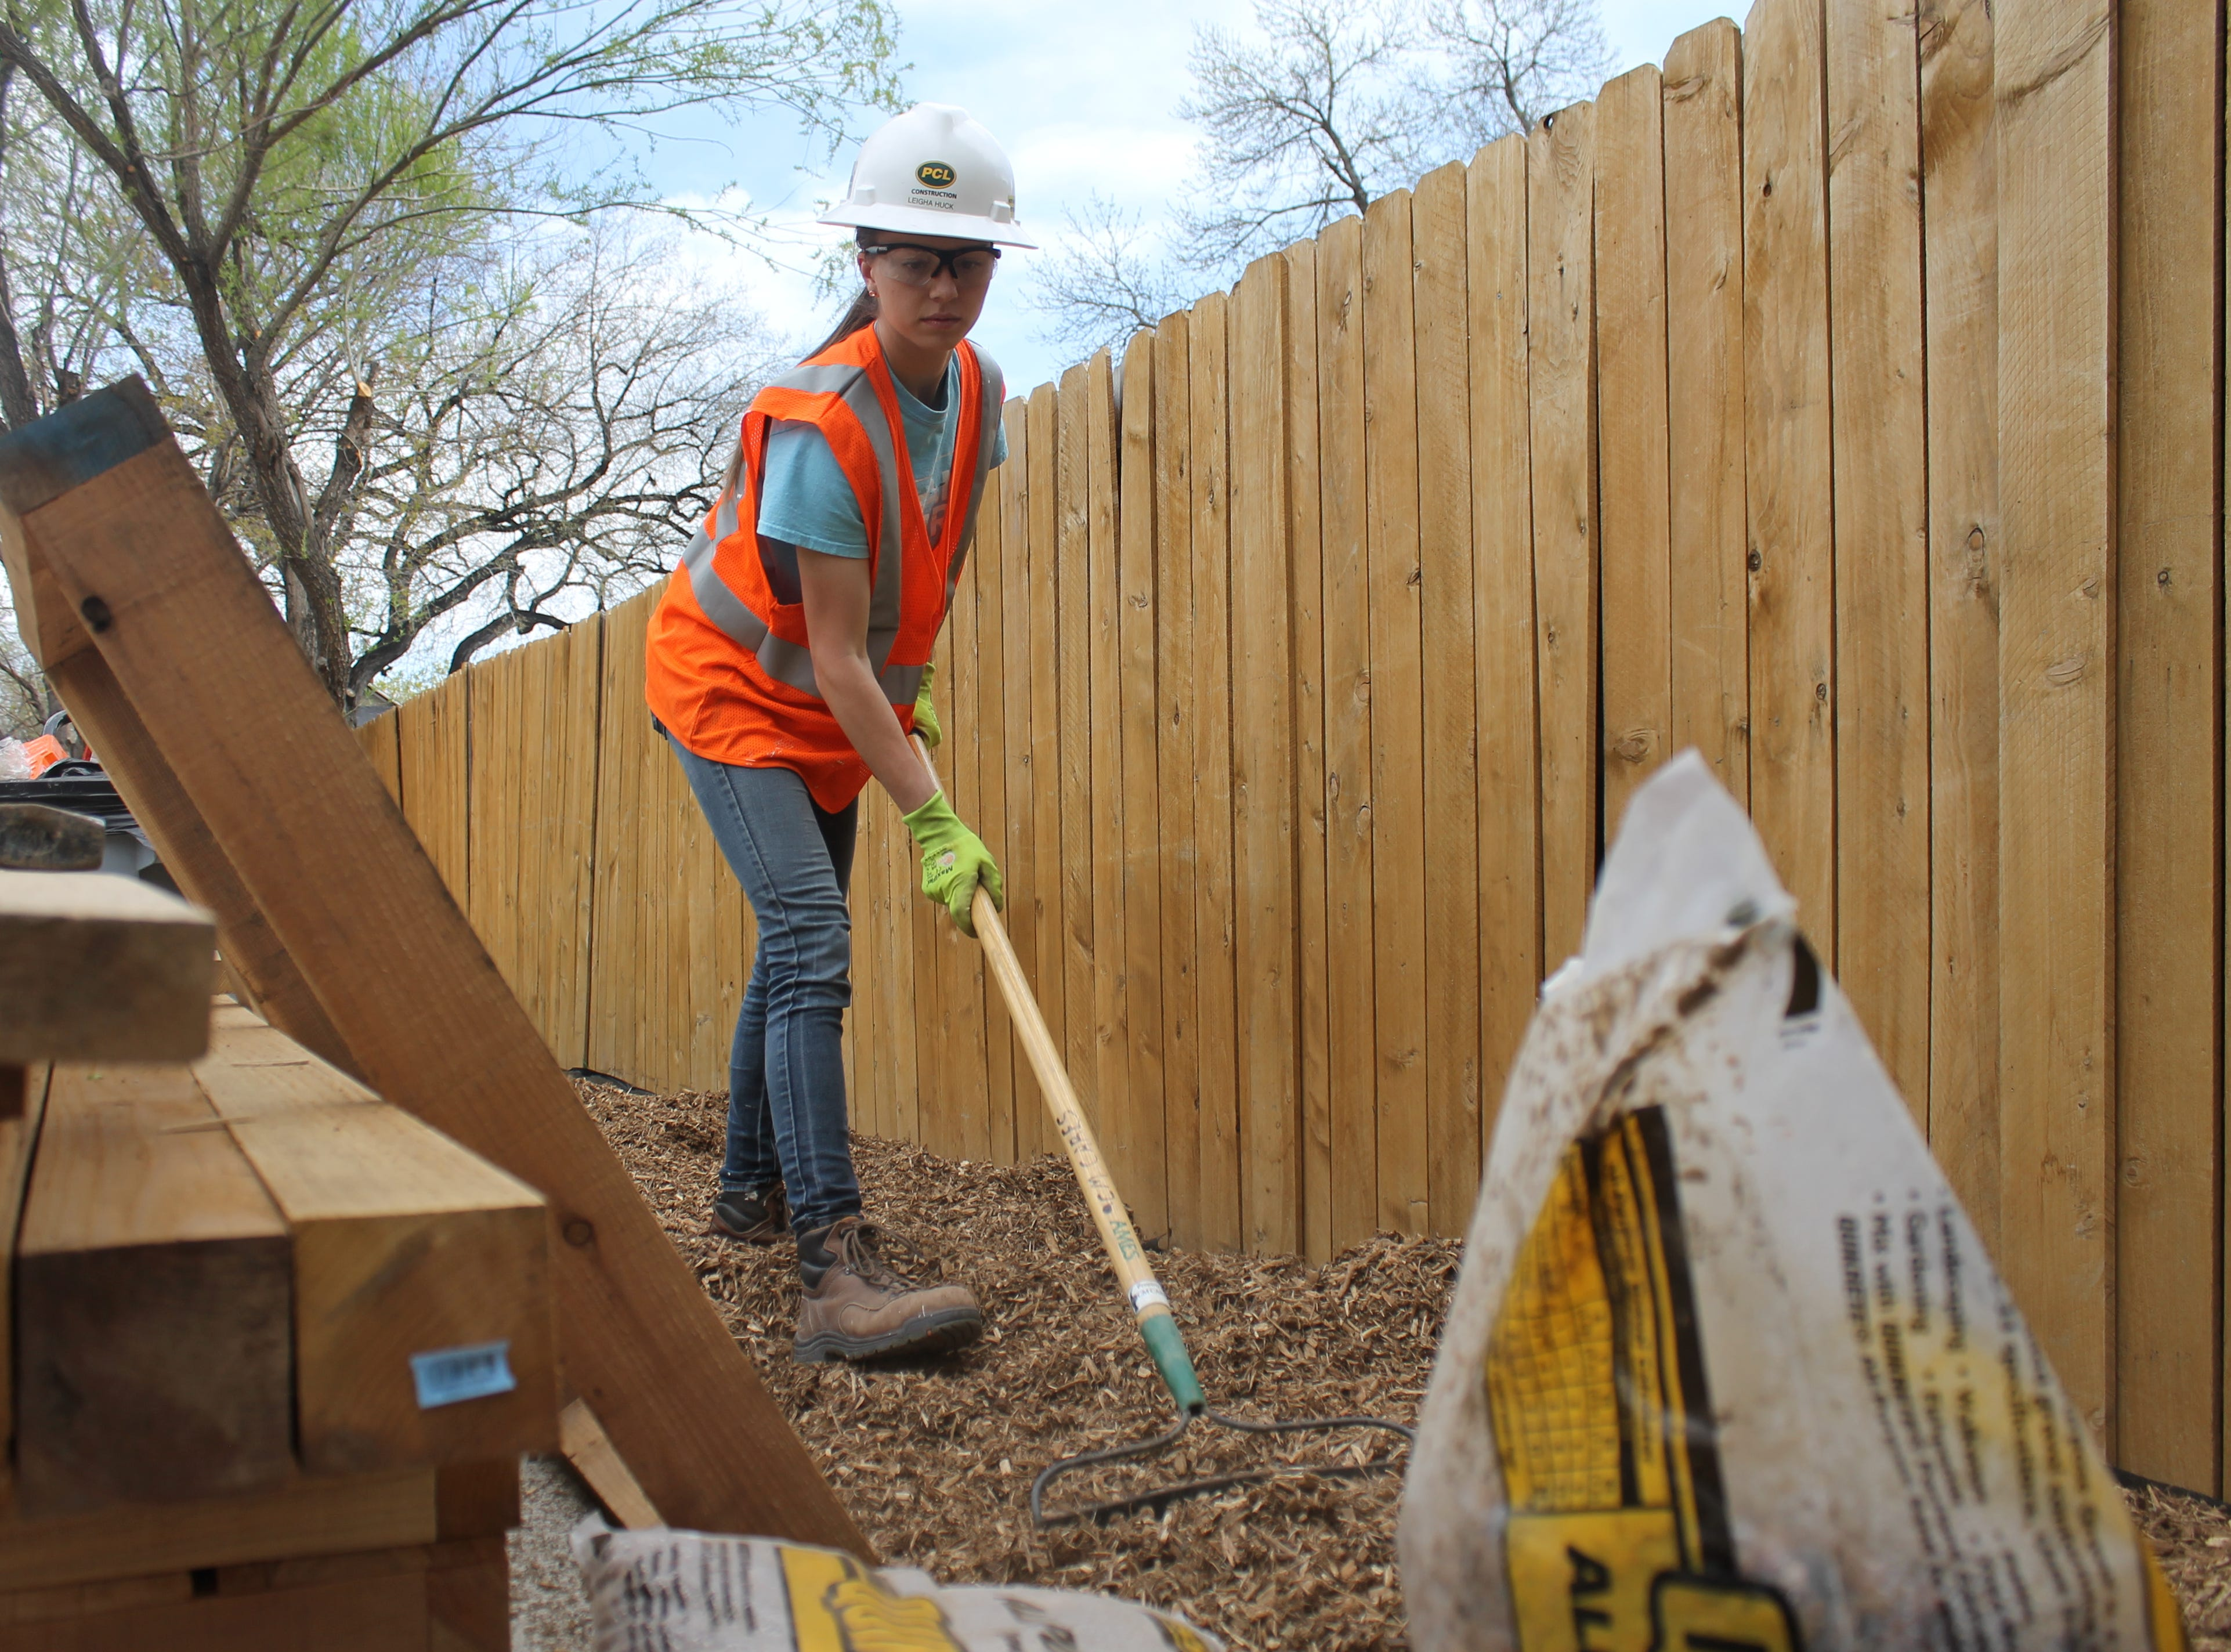 Colorado State University construction management student Leigha Huck works to set down mulch Saturday, April 27, 2019. Huck is part of the Construction Management Cares program, working to make home improvements for folks in the community with disabilities.